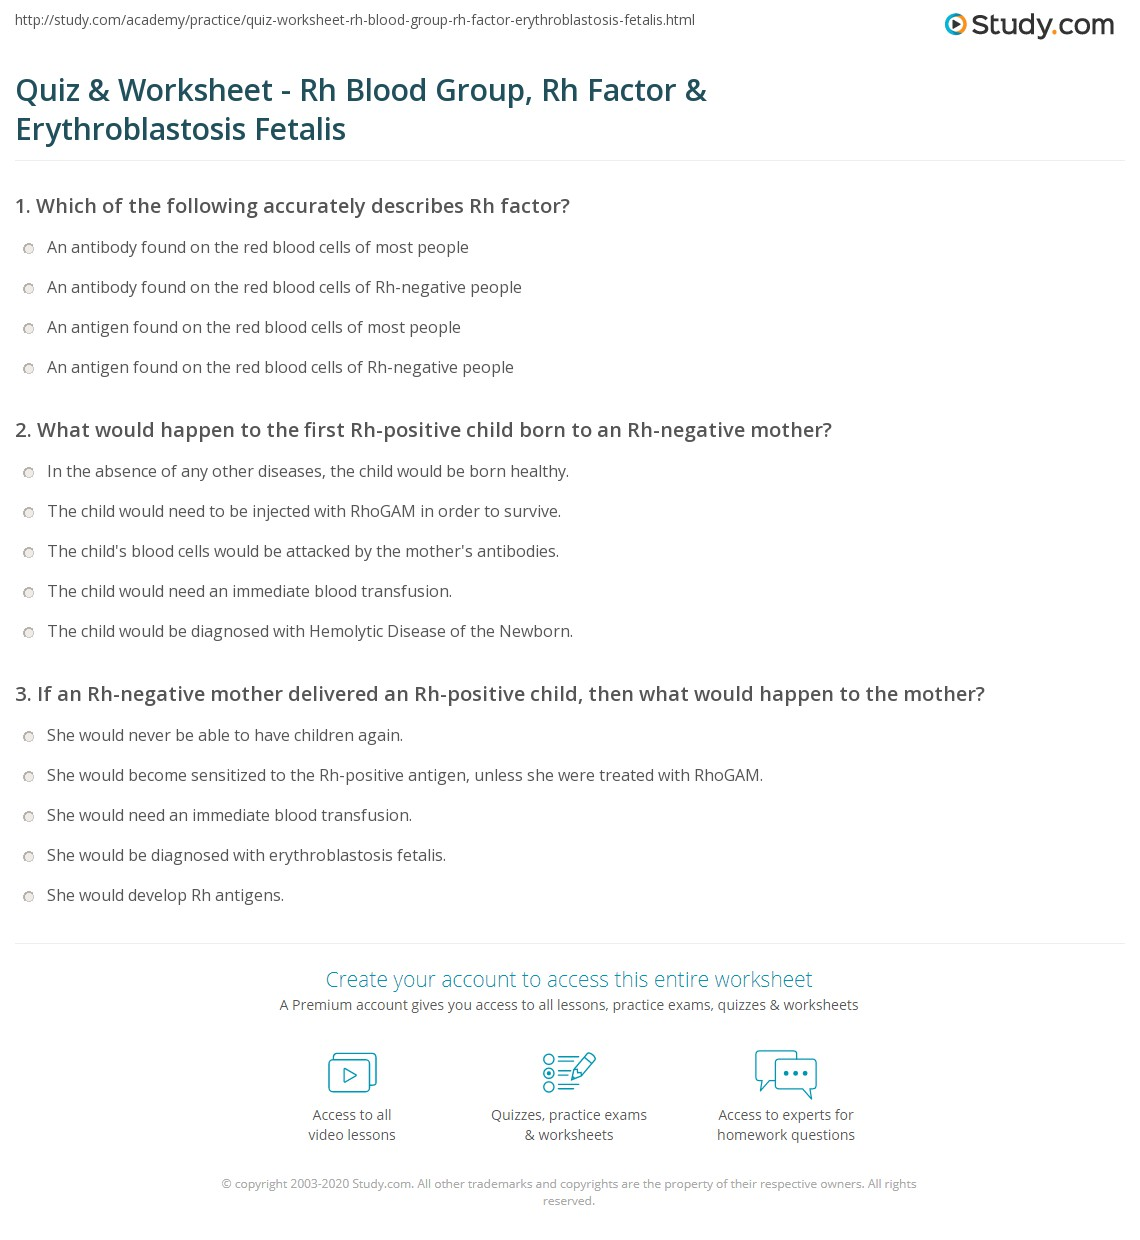 quiz worksheet rh blood group rh factor erythroblastosis fetalis. Black Bedroom Furniture Sets. Home Design Ideas